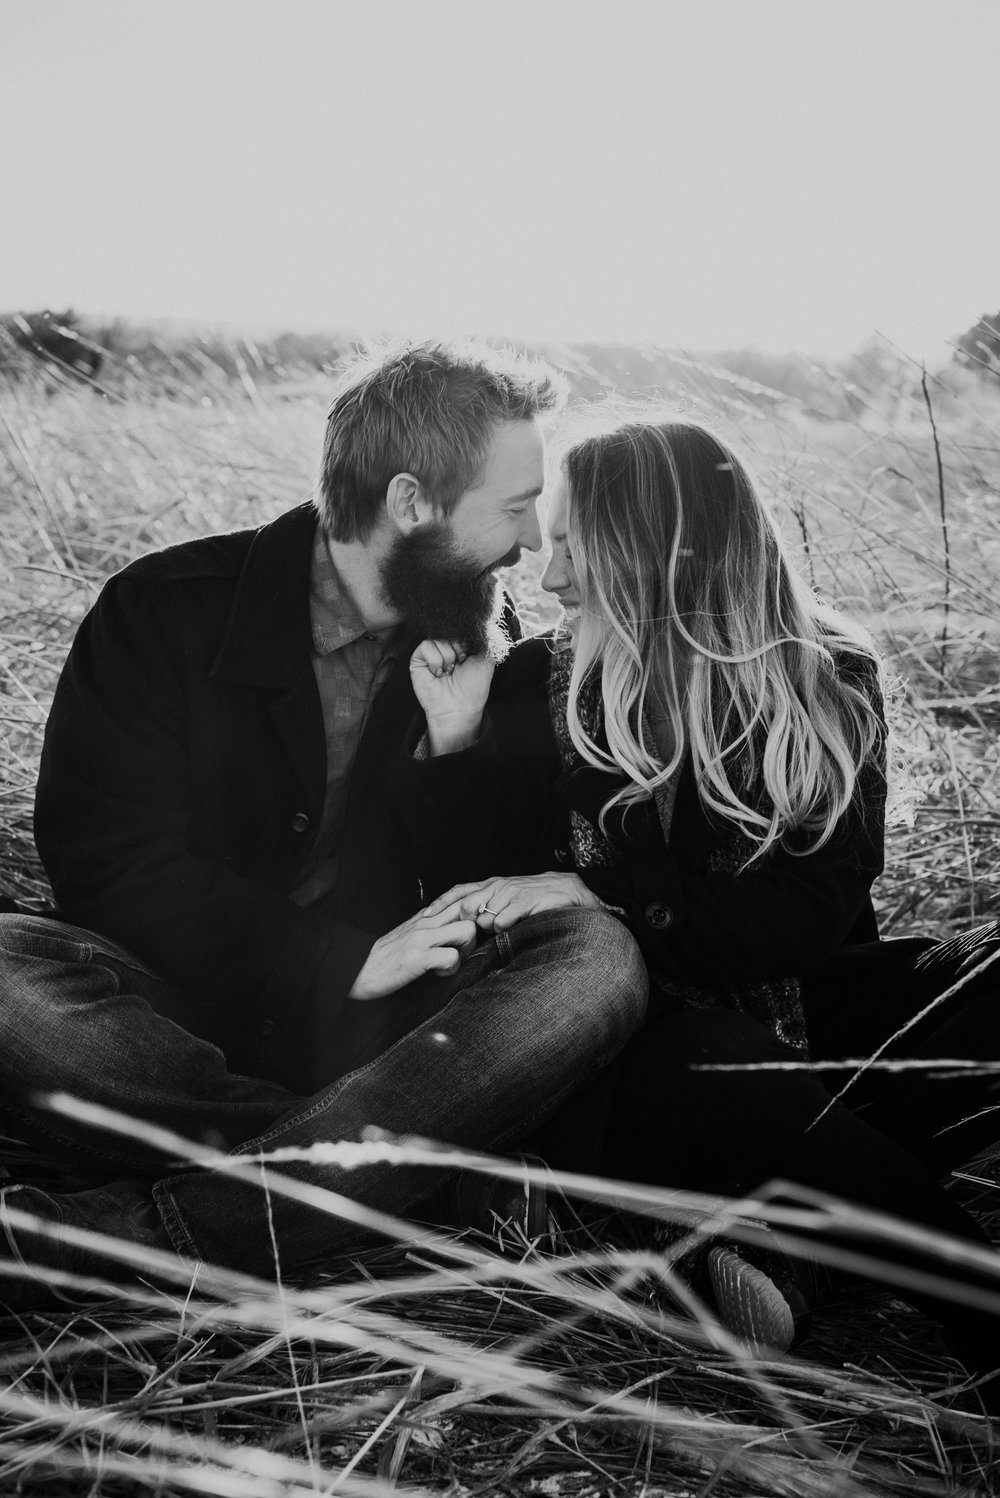 Nebraska Engagement Photographer Kaylie Sirek Photography 022.jpg